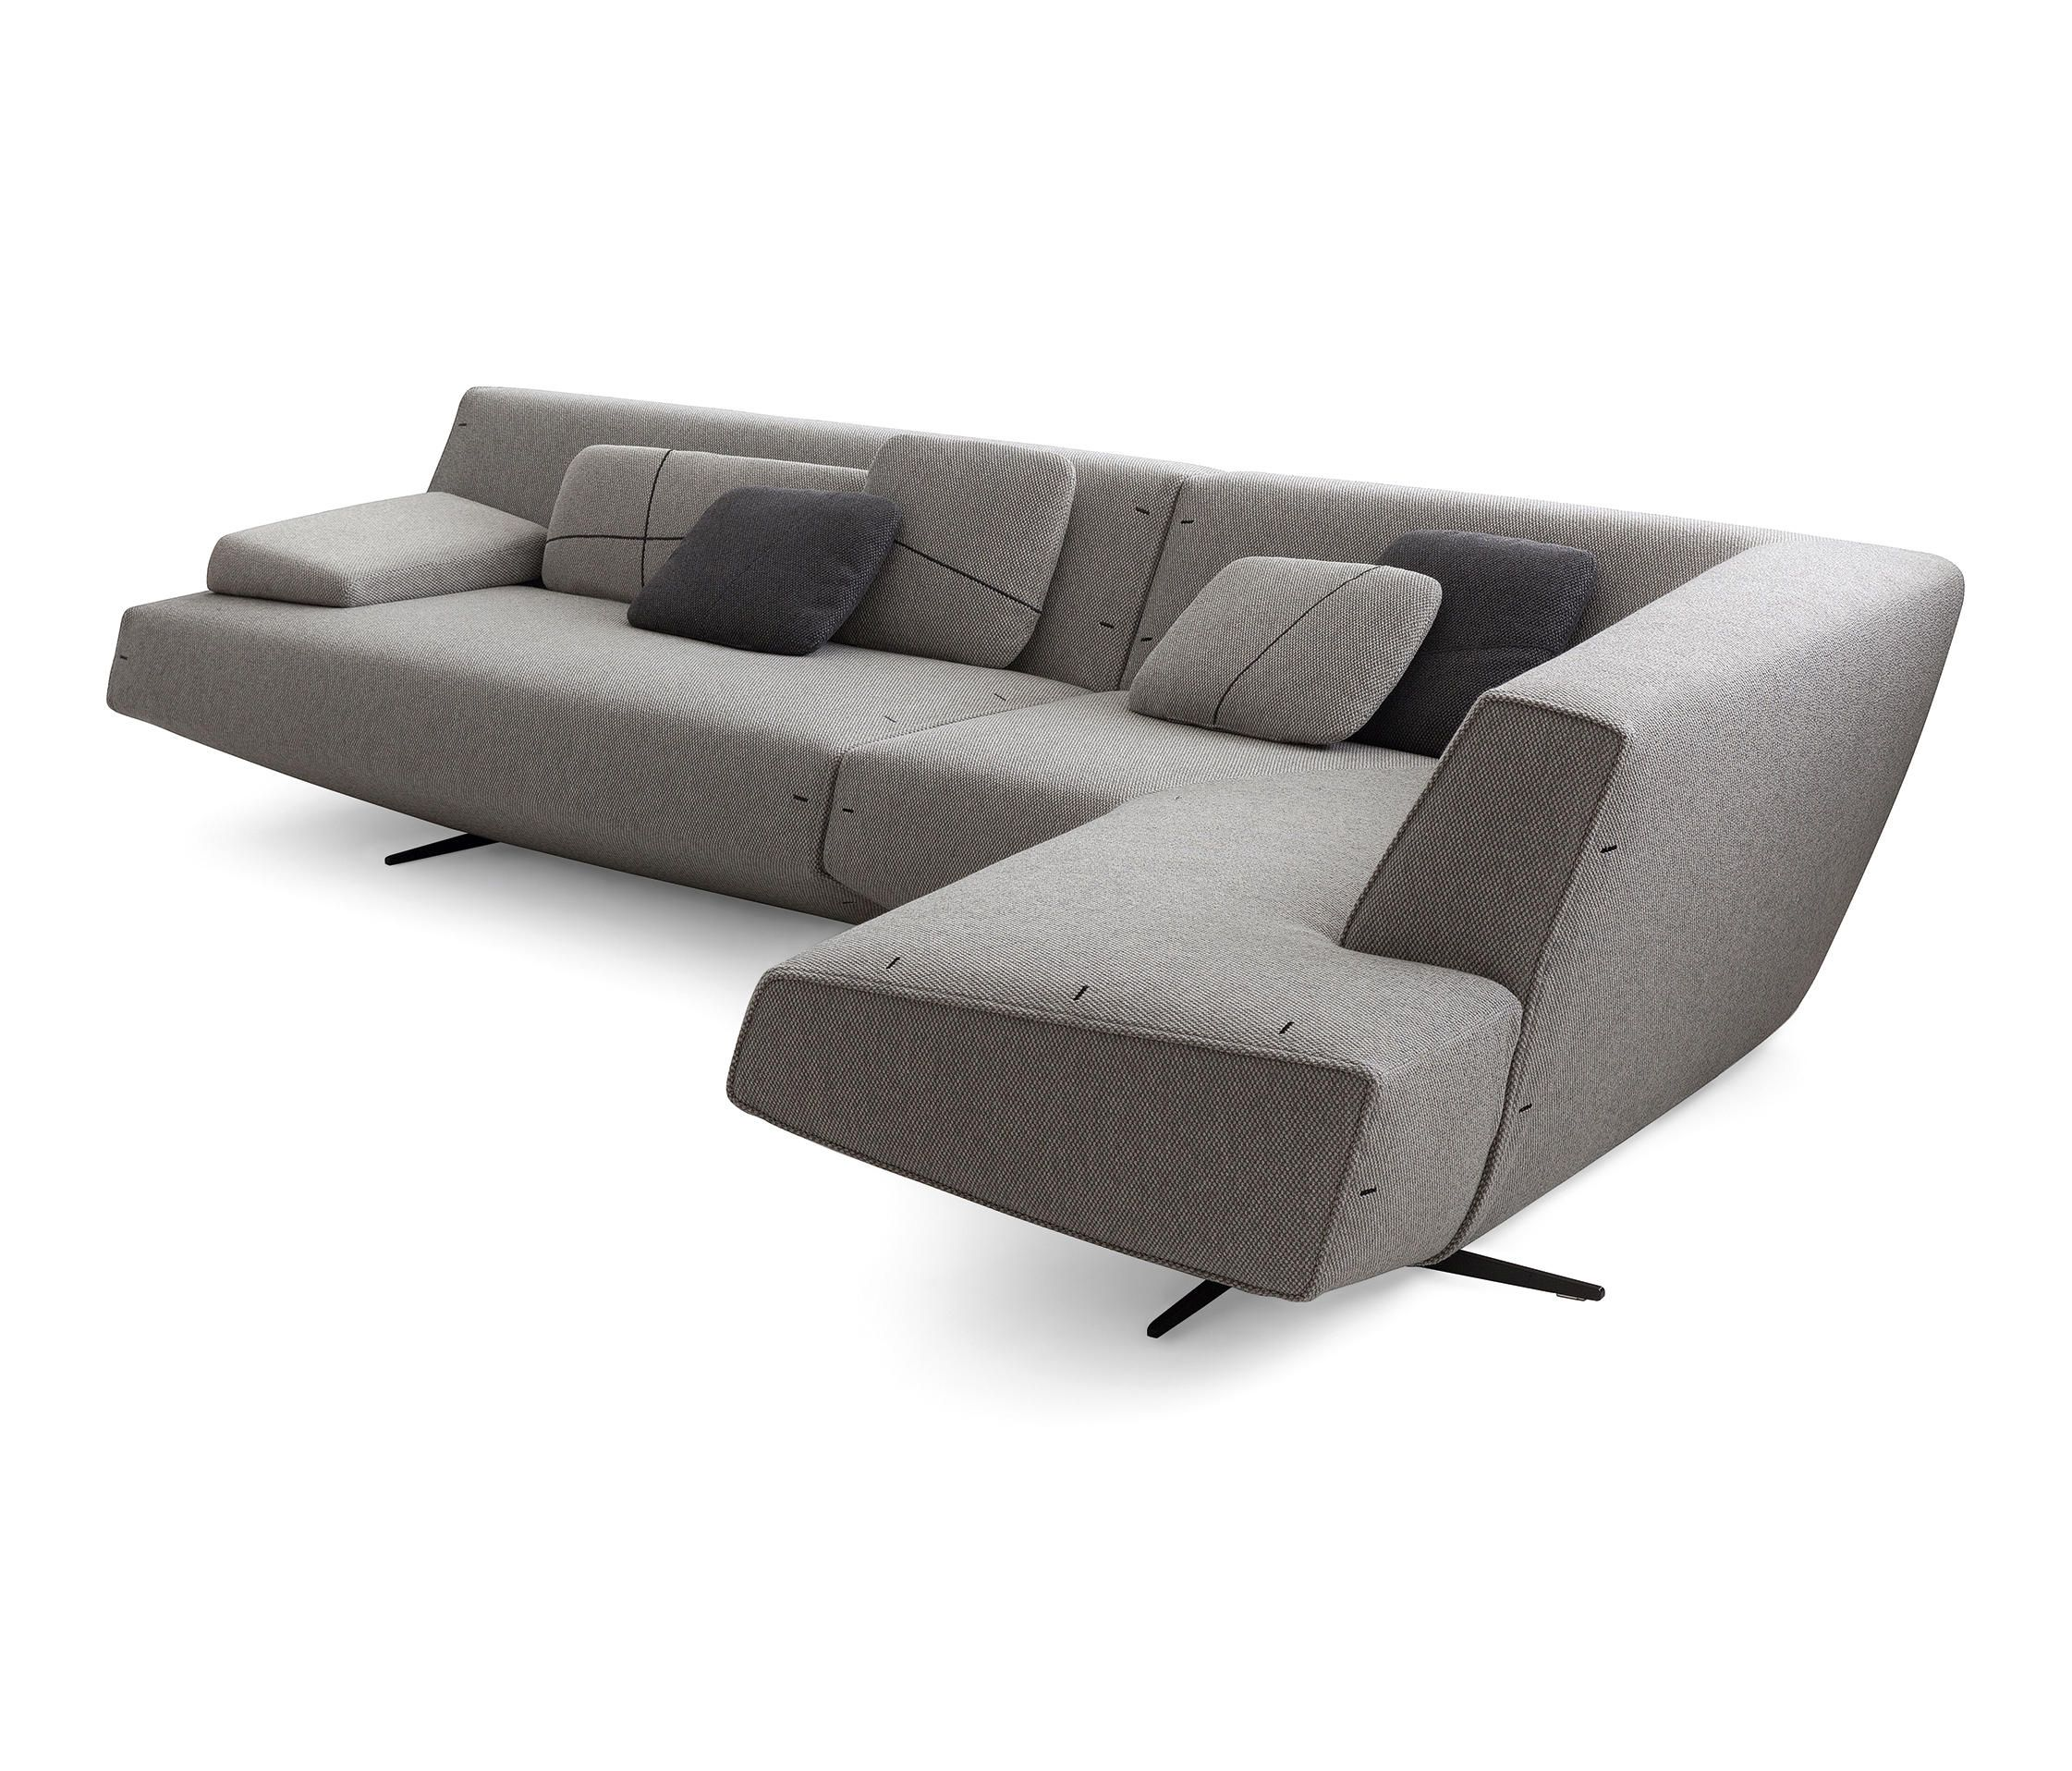 Sydney Poliform Sofa Designed By Jean Marie Maud For Is A Indoor Use The Upholstery Available In Fabric And Leather